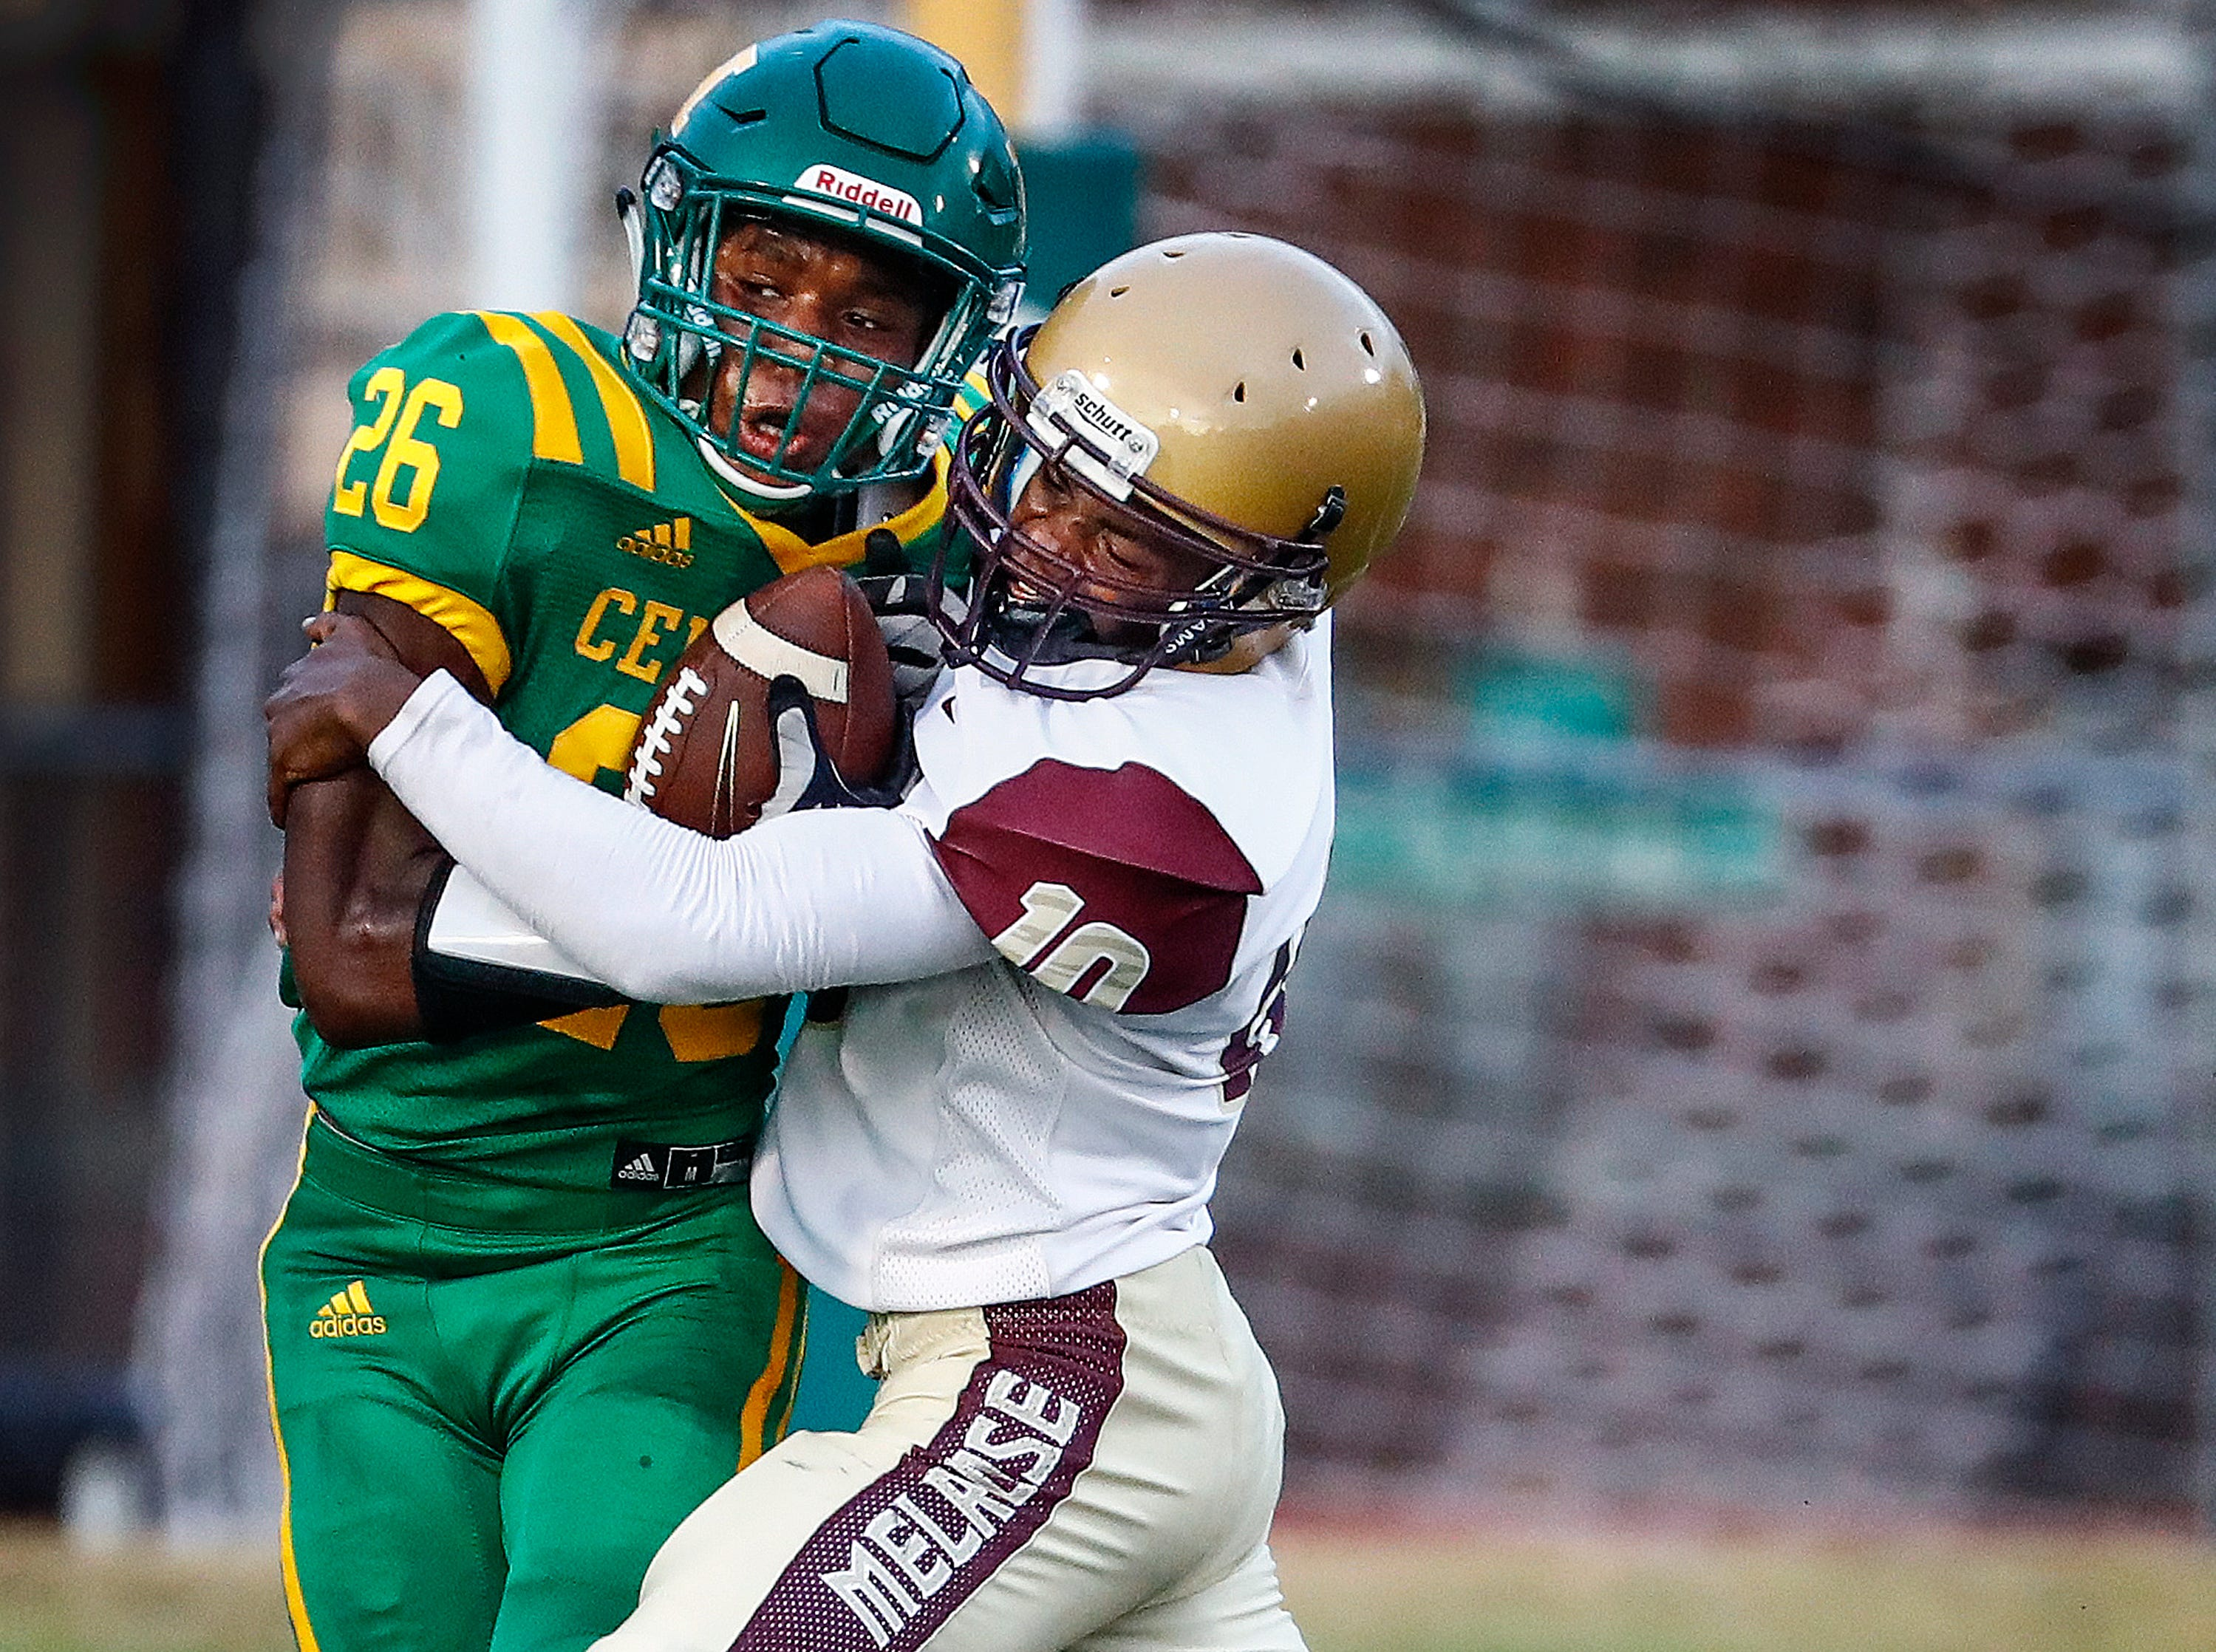 Central receiver Lorenzo Towns (left) is brought down by Melrose defender Donterrius Taylor (right) during action of the season opener on Friday, Aug. 17, 2018, at Crump Stadium.